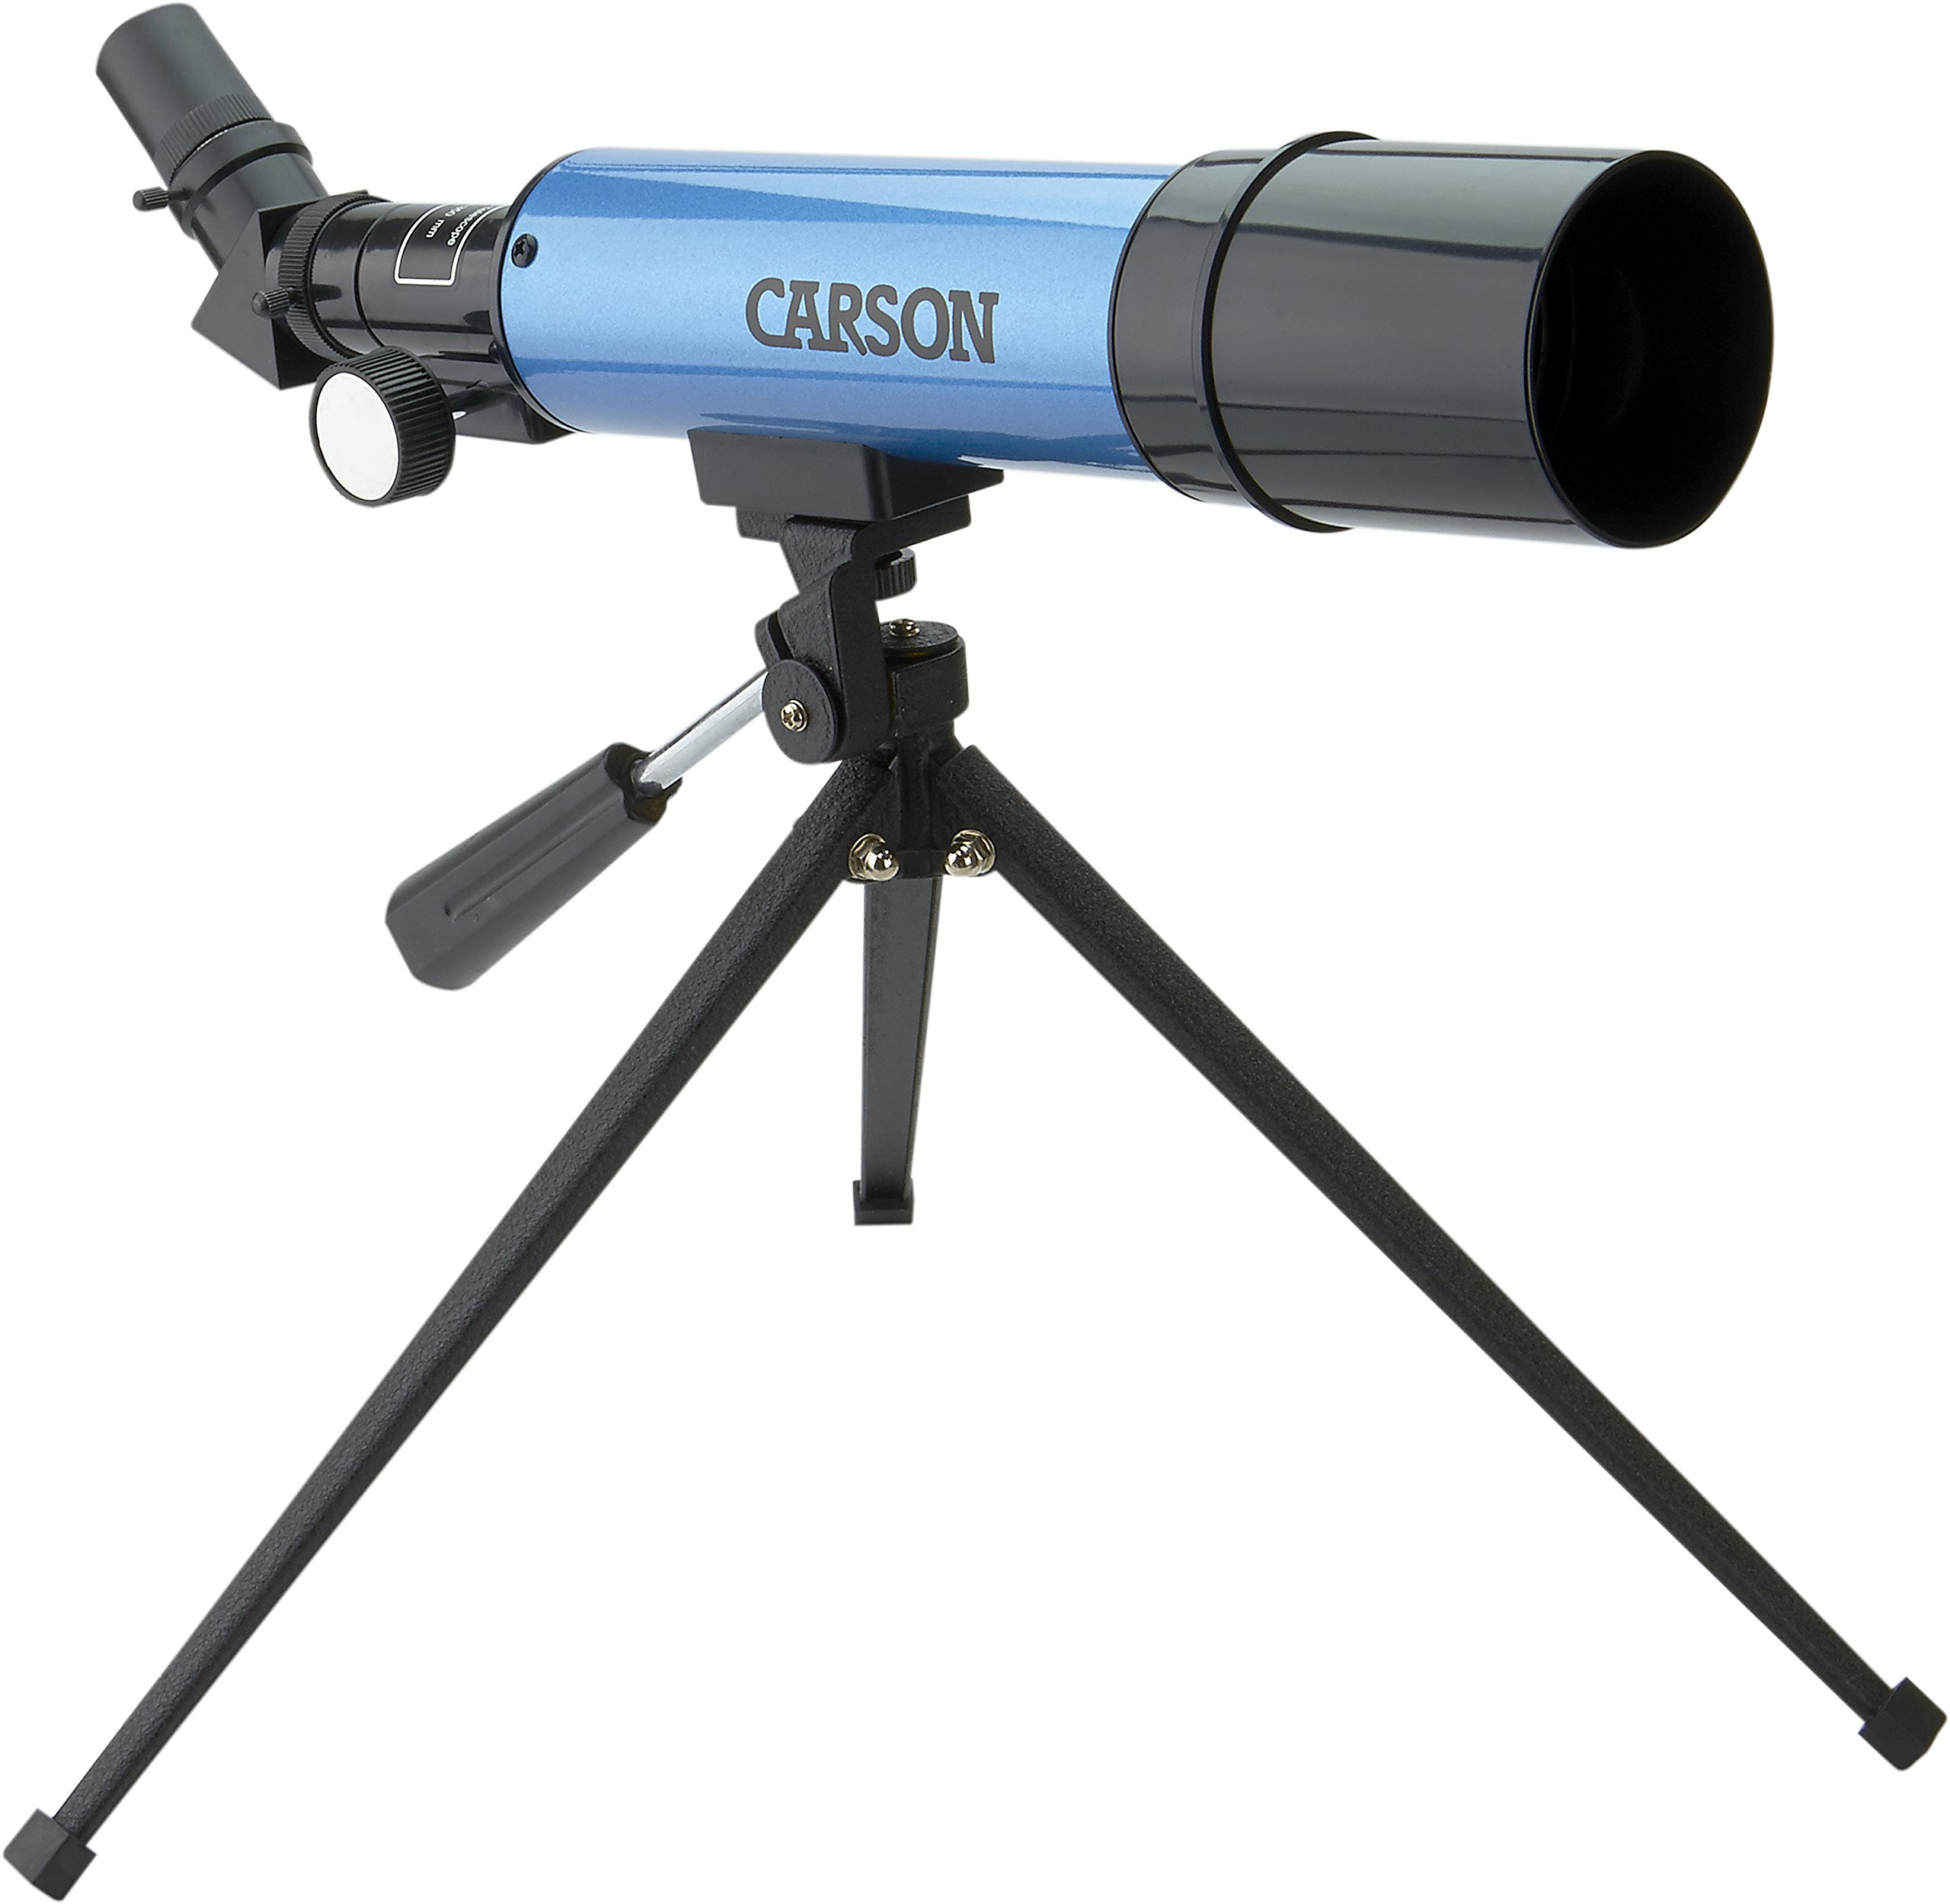 Carson Aim Refractor Type 18x-80x Power Telescope with Tabletop Tripod (MTEL-50) by Carson